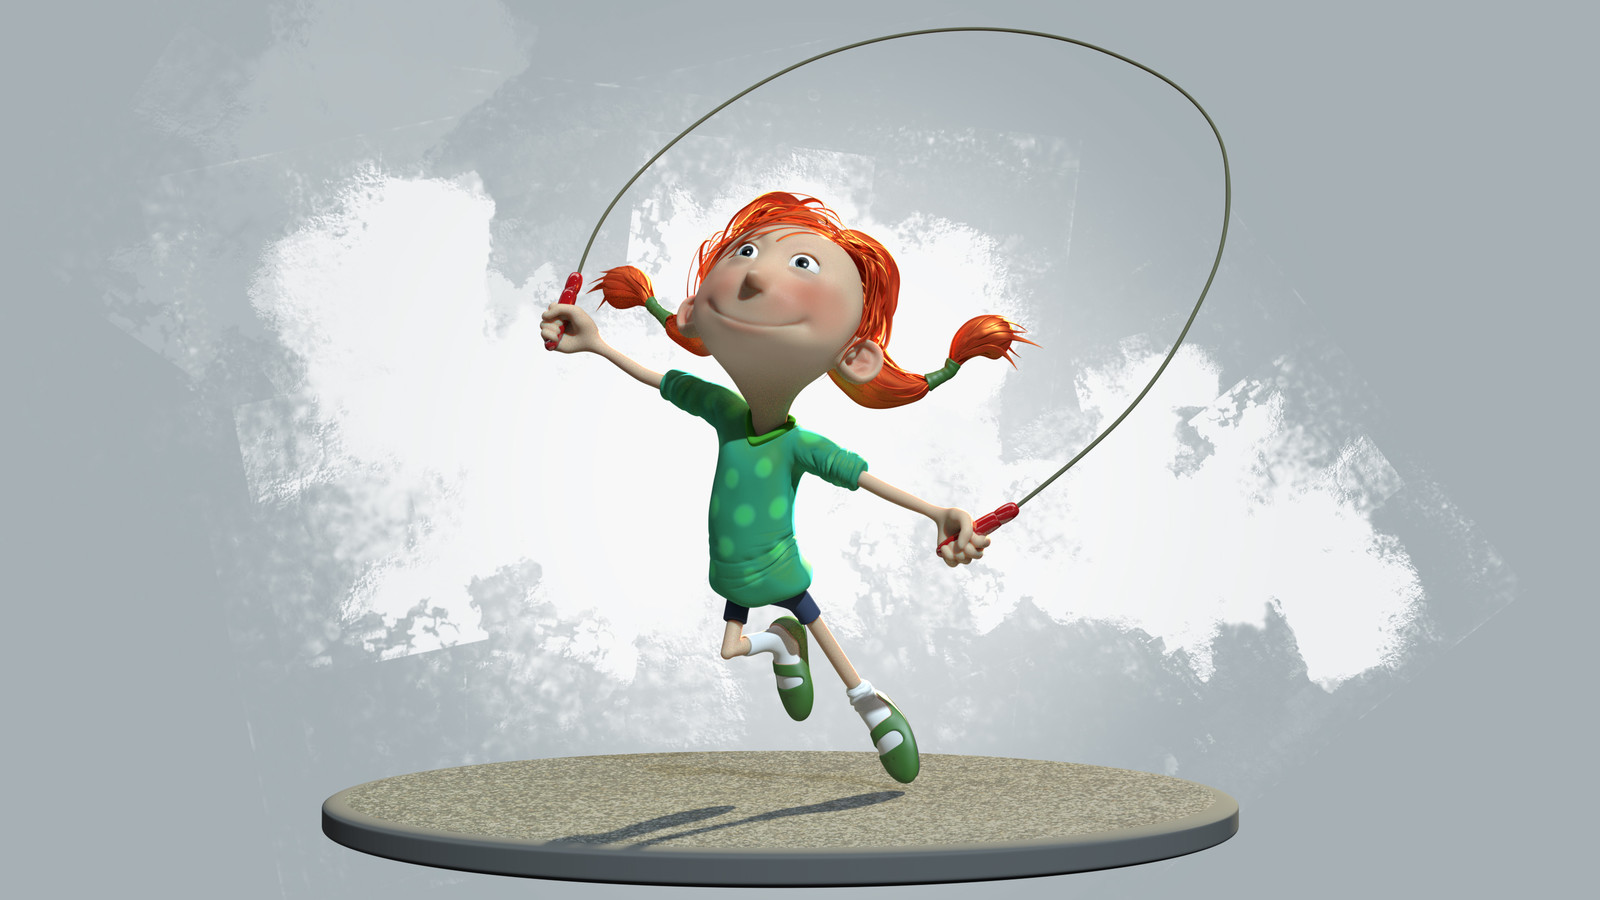 Skipping girl